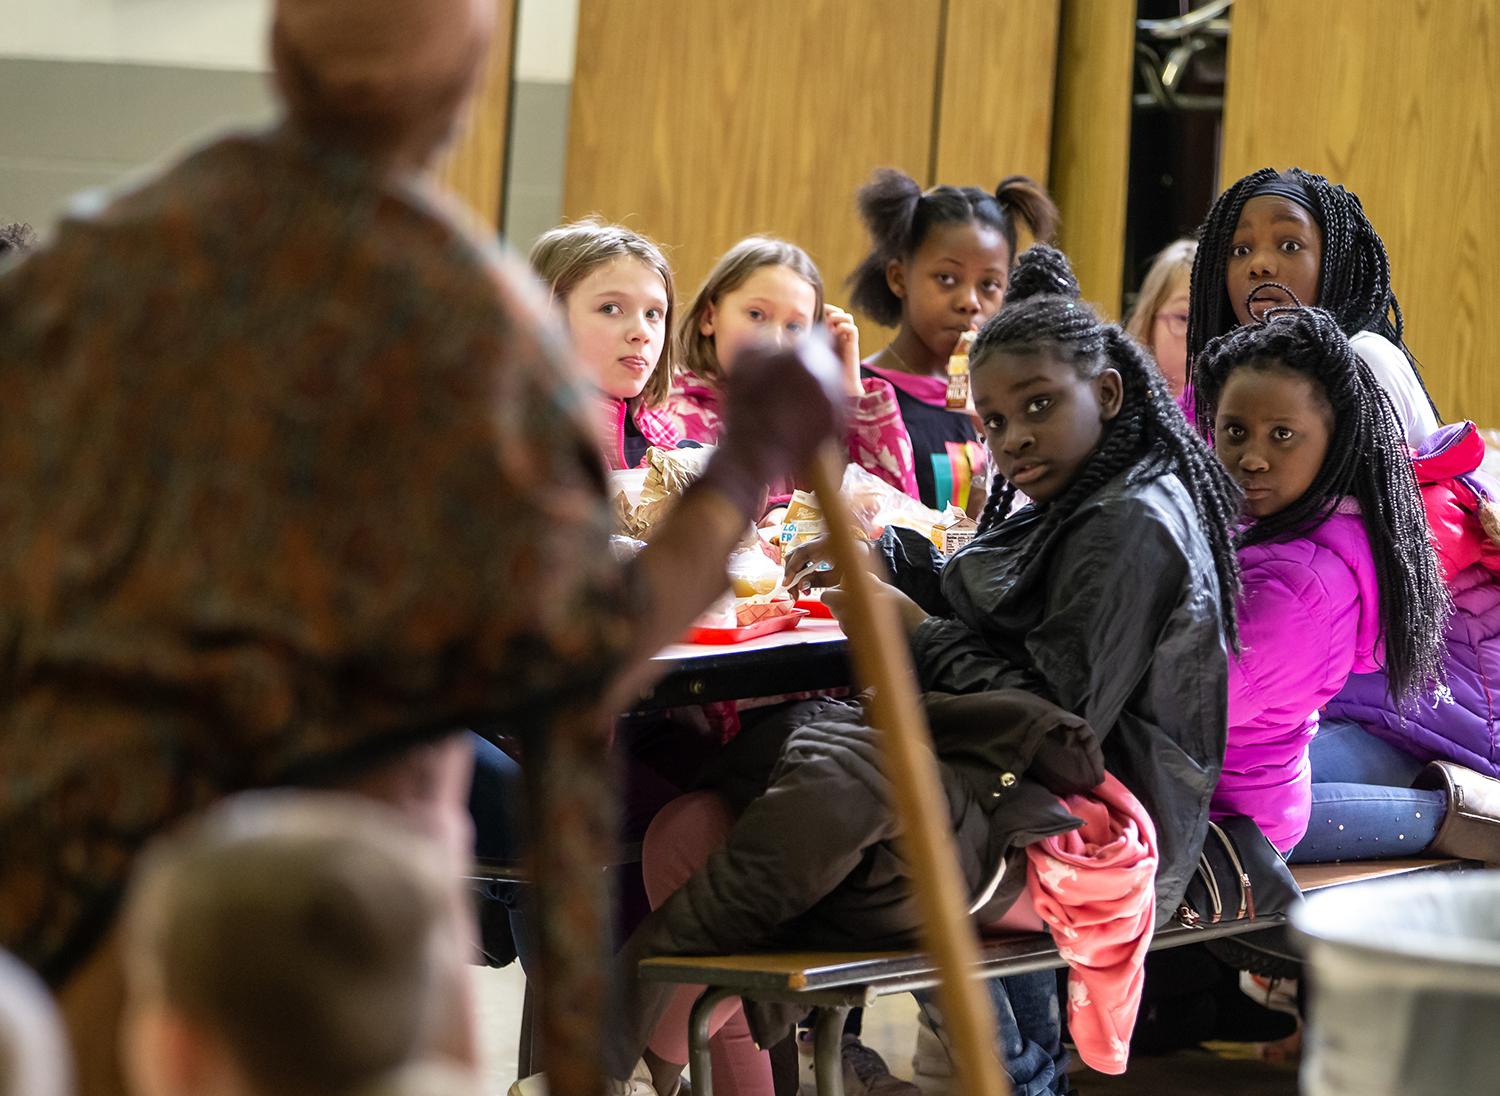 "Hazel Dell Elementary School students Nakyia Cooper, center, Sequoiyah Heidelberg and Amiah Alexander, right,  listen as Kathryn Harris, left, portraying Harriet Tubman, tells of Tubman's role in the Underground Railroad during a Black History Month program during the school's lunch hour, Thursday, Feb. 21, 2019, in Springfield, Ill. ""We want students to be aware of African American contributions to our society, which are often overlooked,"" said Principal Jamar Scott about the school's weekly Black History Month programs for their students. ""I think it's important that people know about Harriet Tubman and the work that she did because it's a part of American history not just African American history,"" said Kathryn Harris who has portrayed Tubman since the late 90s. ""Her story is timeless, the things that she did, her commitment to the cause of freedom, and we should all be committed, to making things better...that's what I like about Harriet Tubman."" [Justin L. Fowler/The State Journal-Register]"